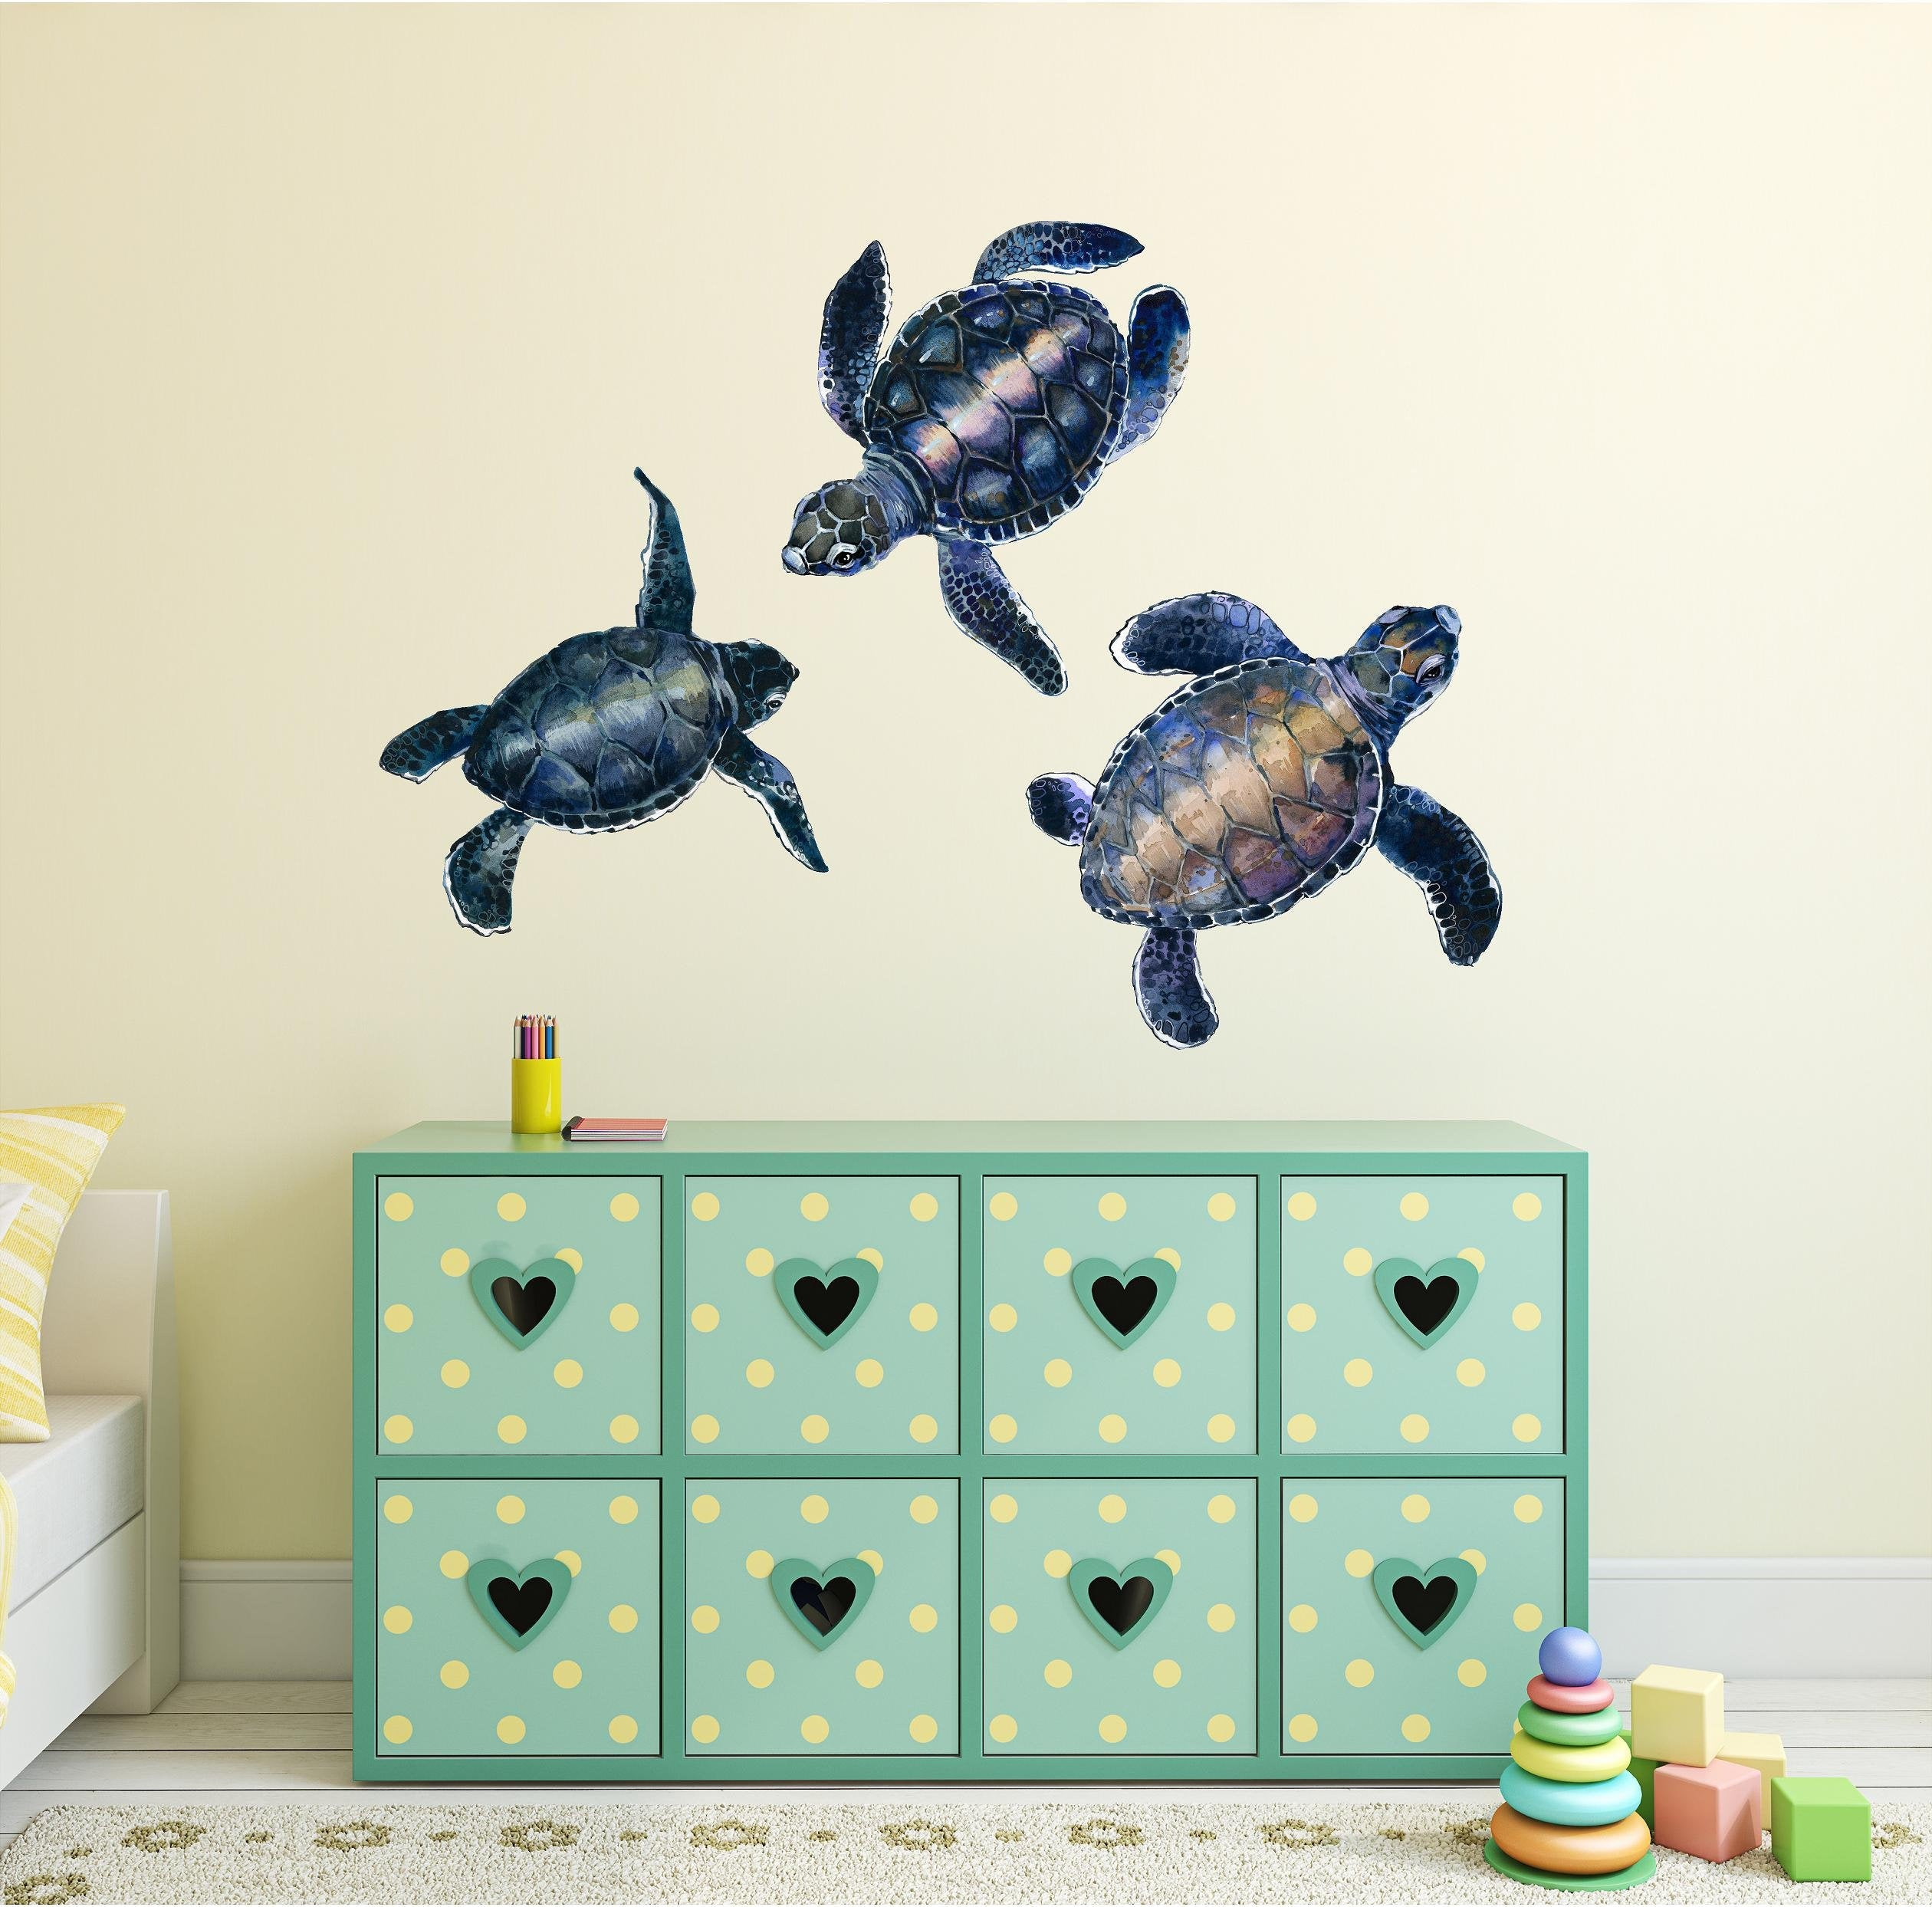 Watercolor Sea Turtles Wall Decal Set Ocean Sea Life Animals Removable Fabric Vinyl Wall Stickers